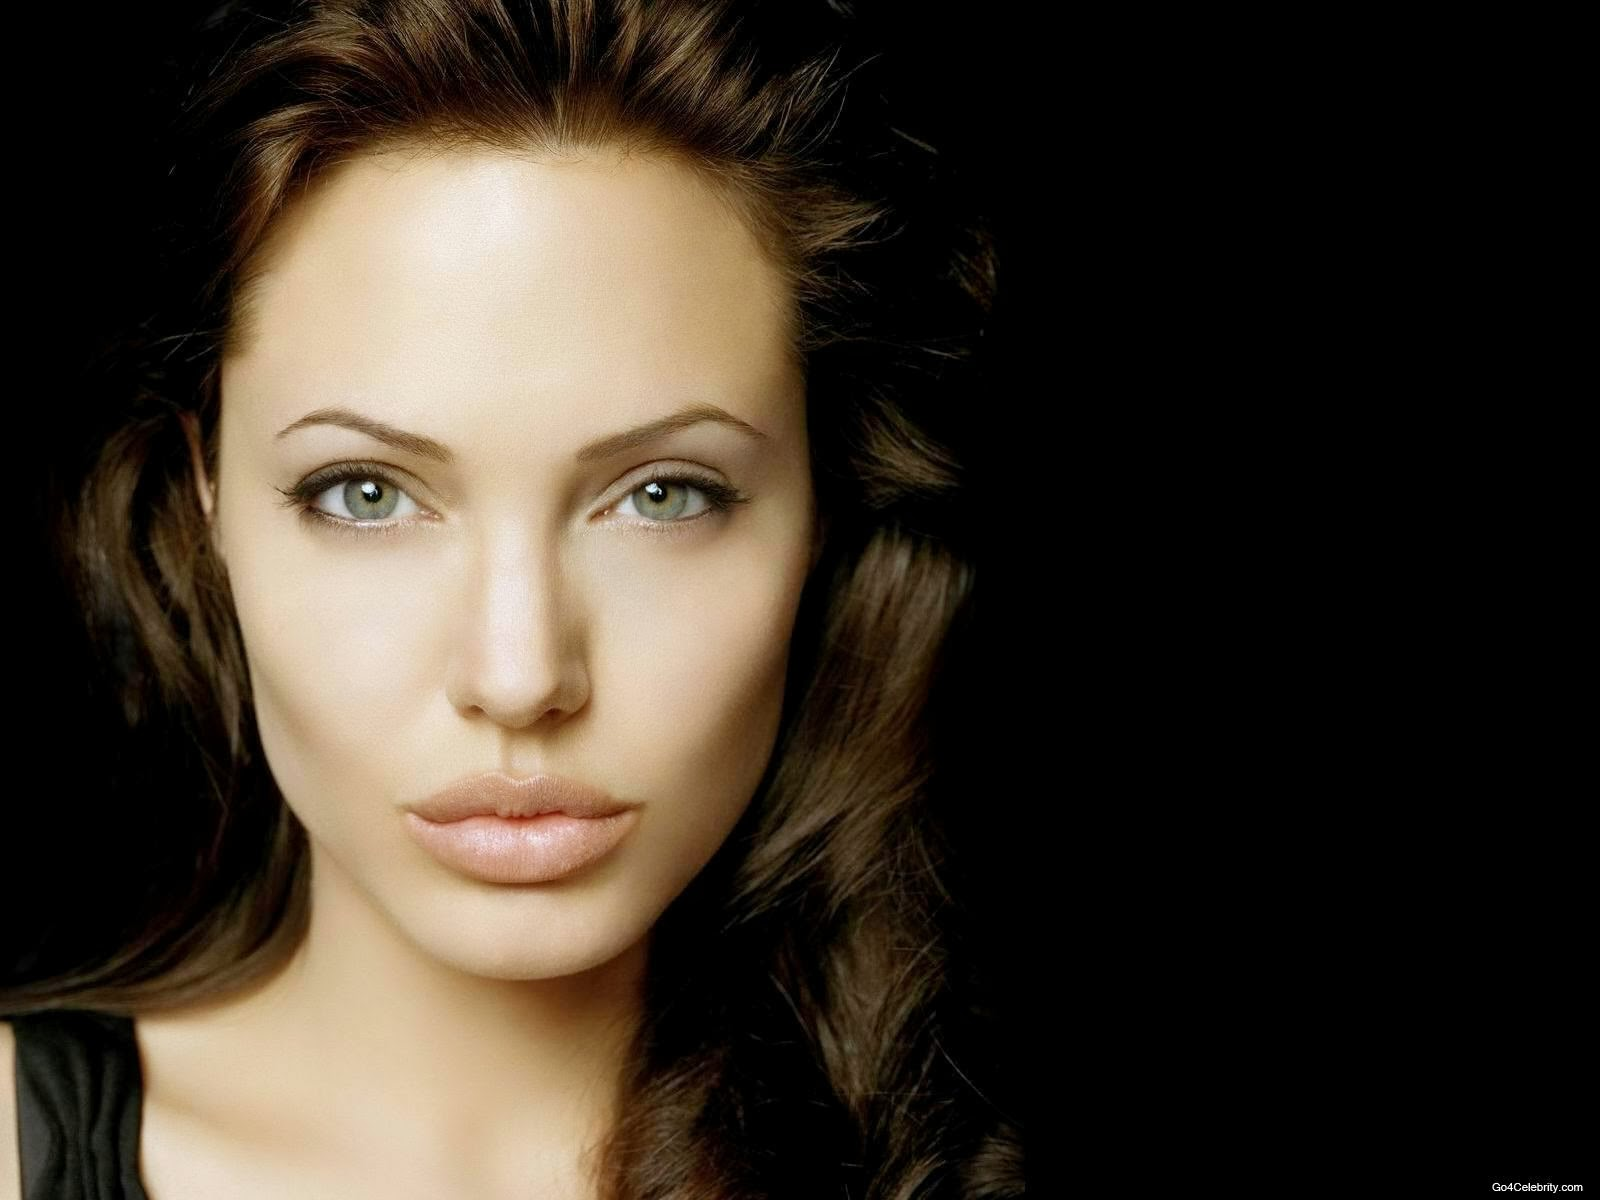 Angelina Jolie HD Wallpaper,Images,Pics - HD Wallpapers Blog